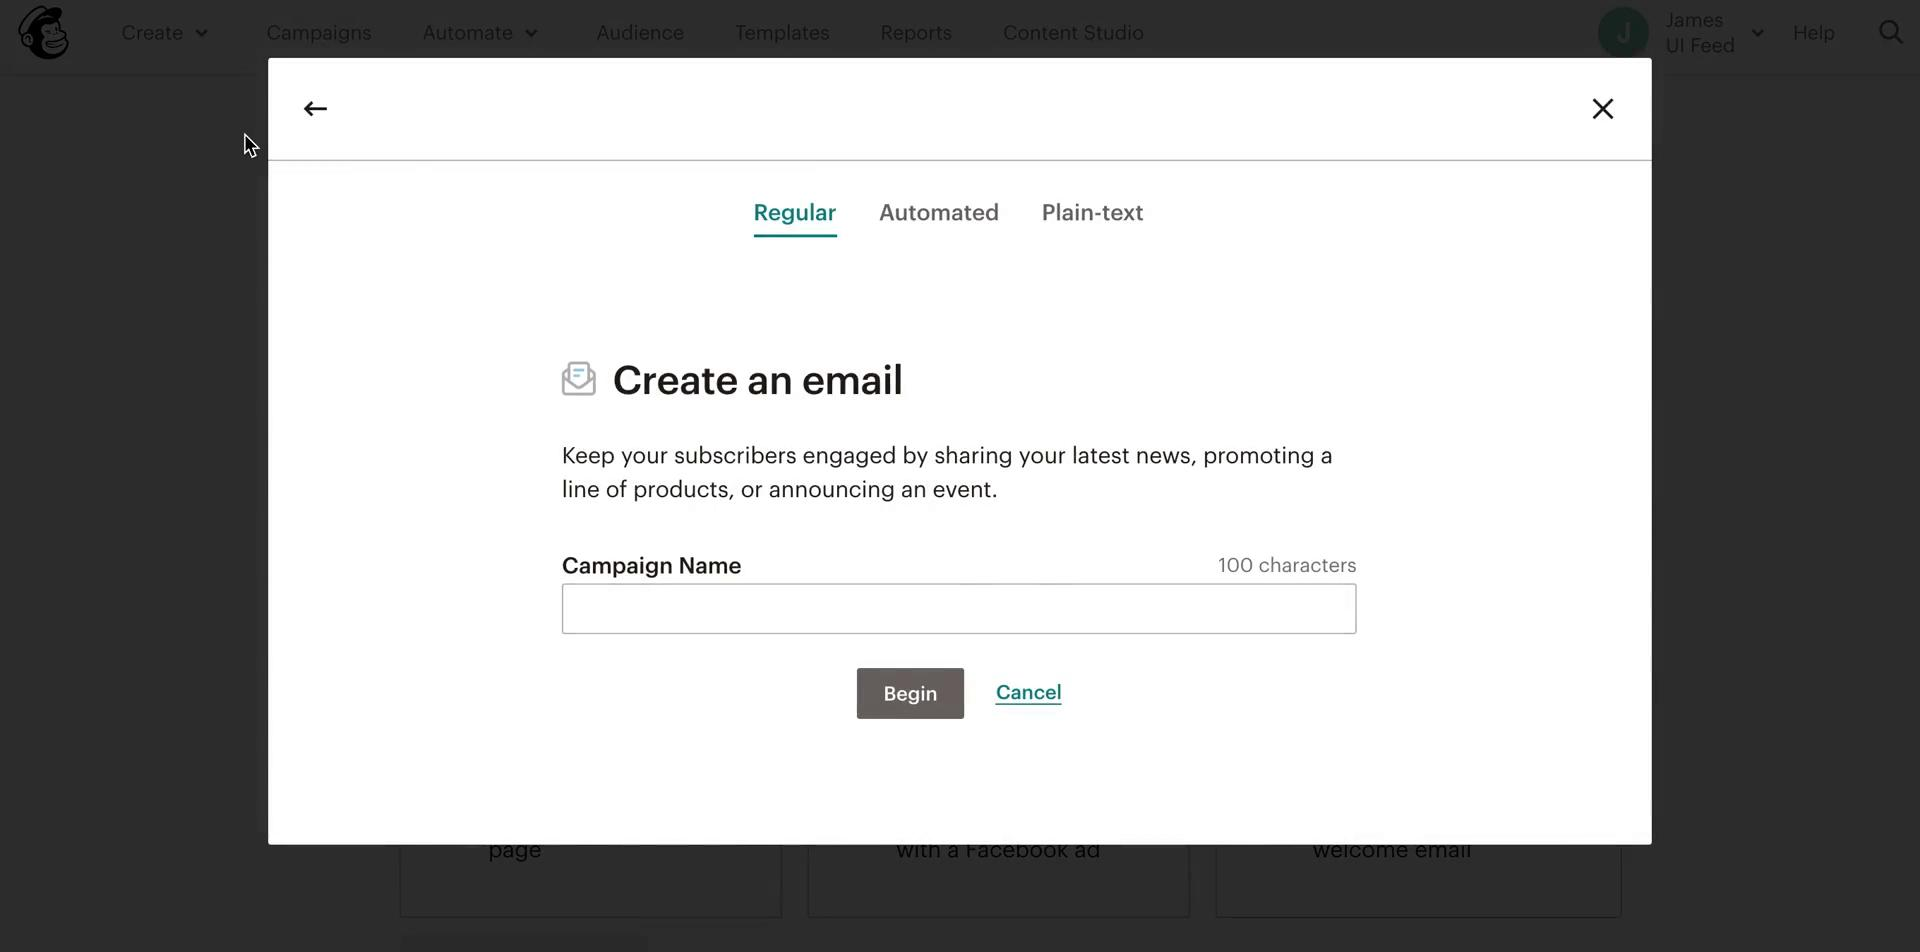 Screenshot of Create email campaign during General browsing on Mailchimp user flow